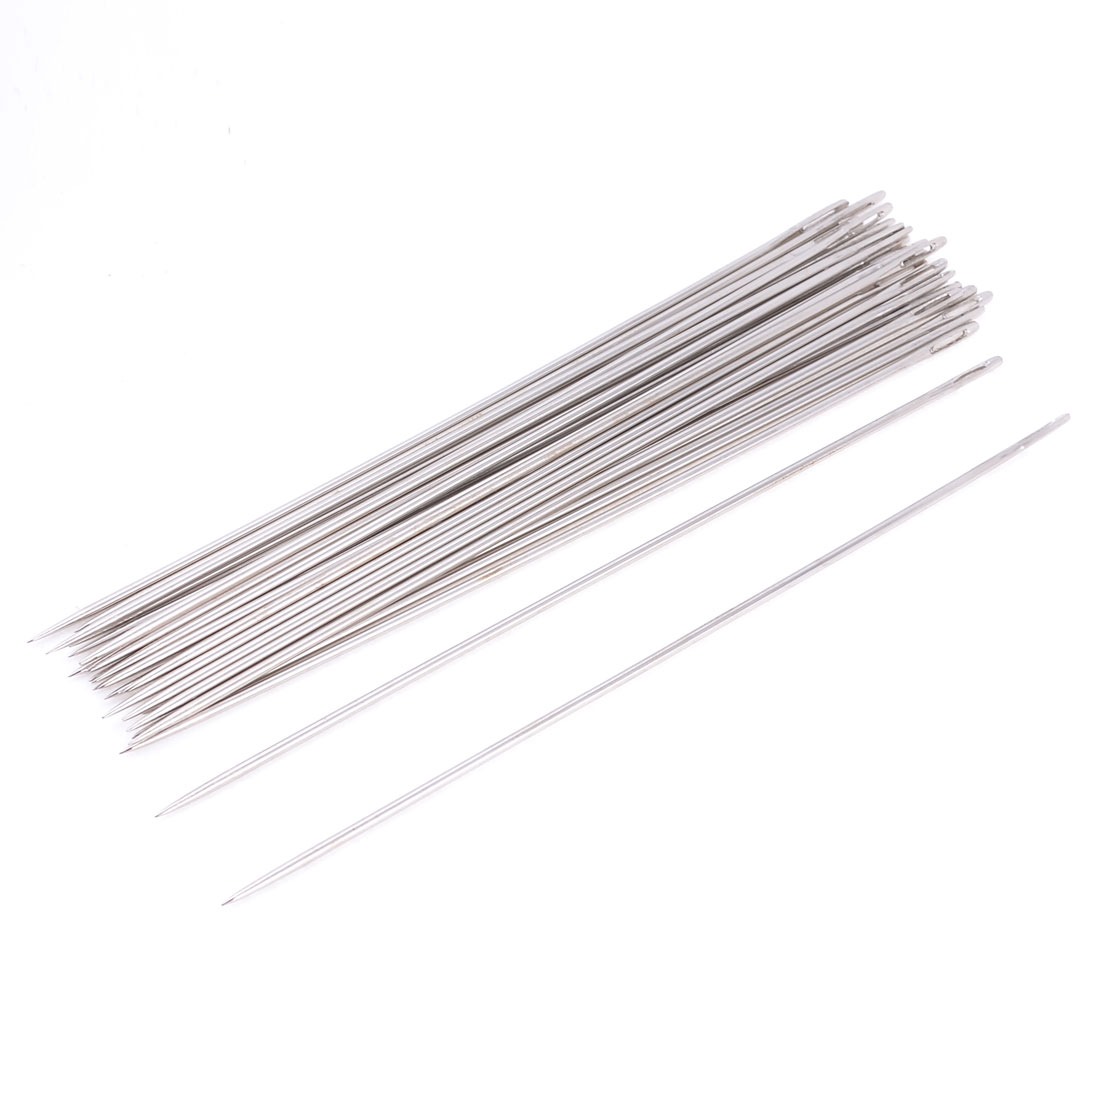 25 Pcs 1.8mm Dia Sharp Tip Metal Quilting Tailor Sewing Needles 15cm Long